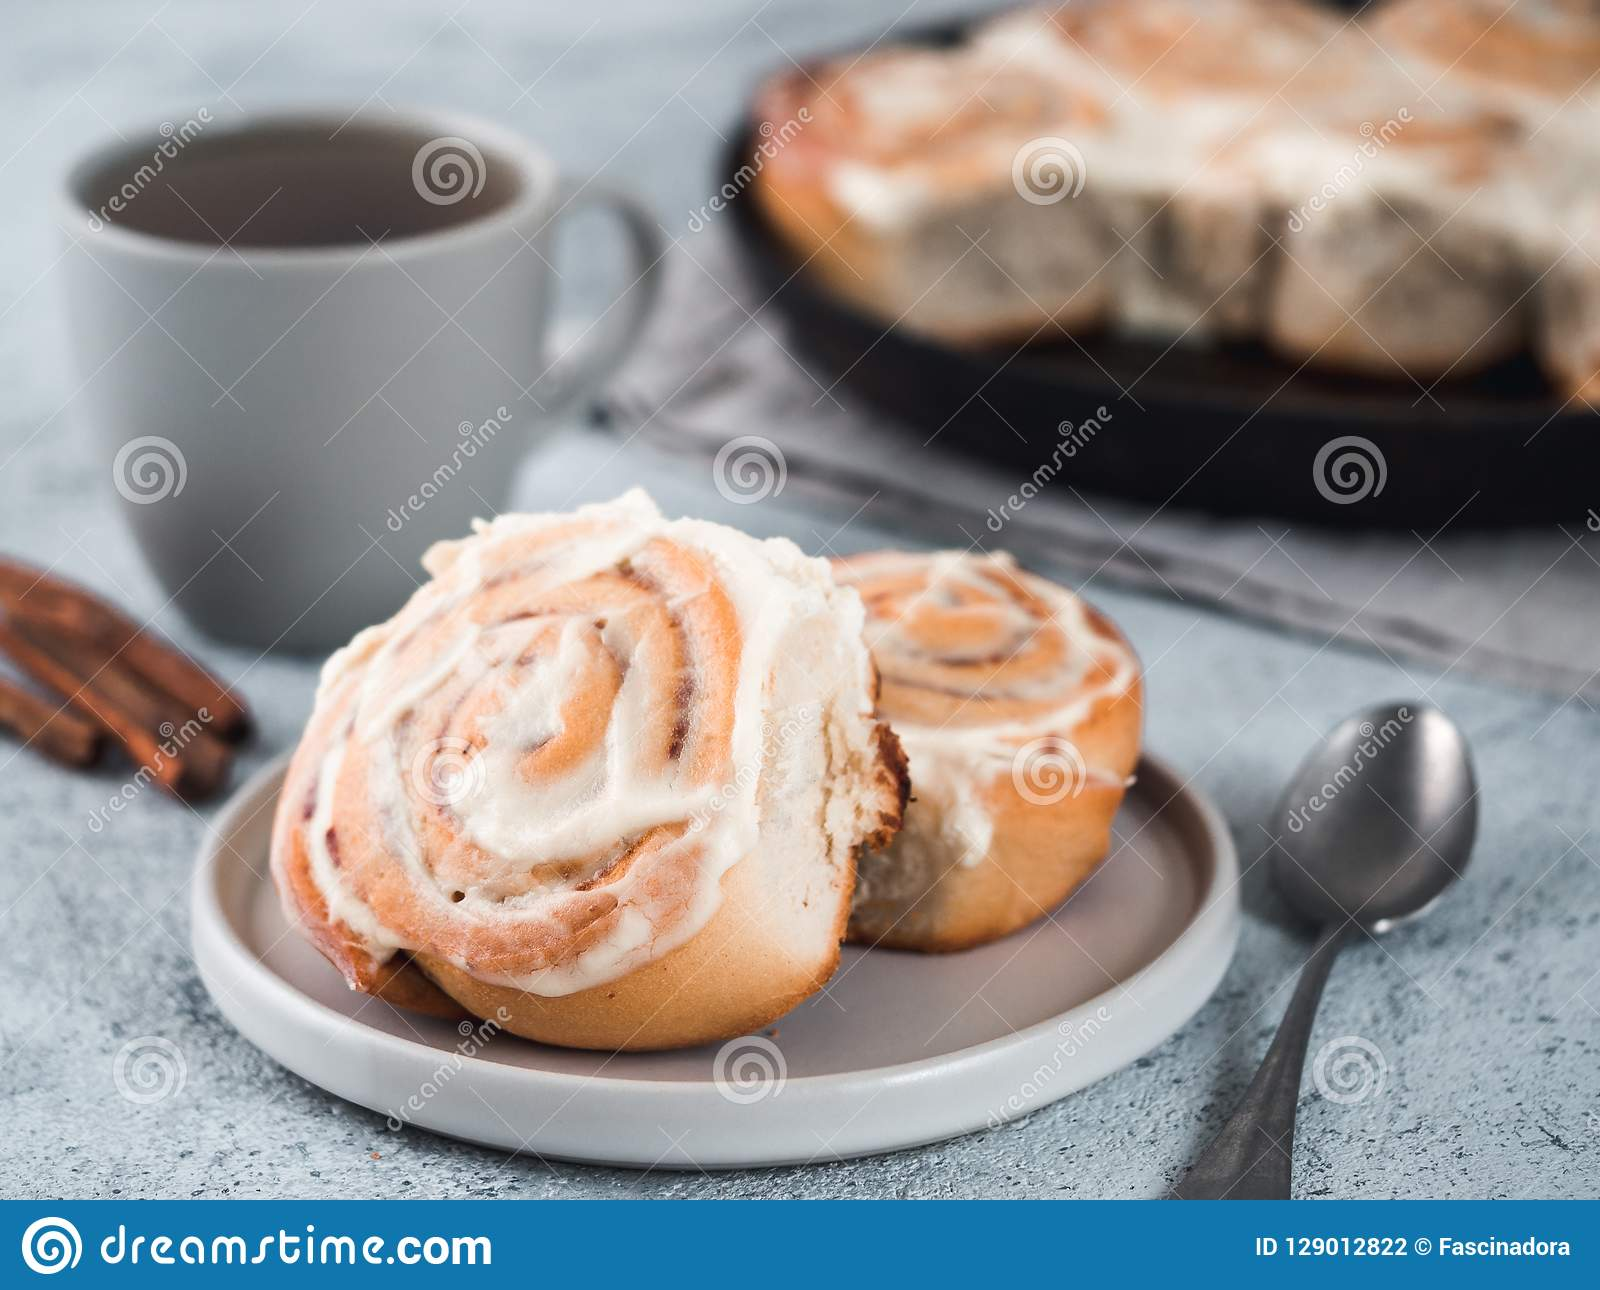 Vegan Cinnamon Rolls With Topping Top View Stock Photo Image Of Culinary Recipe 129012822